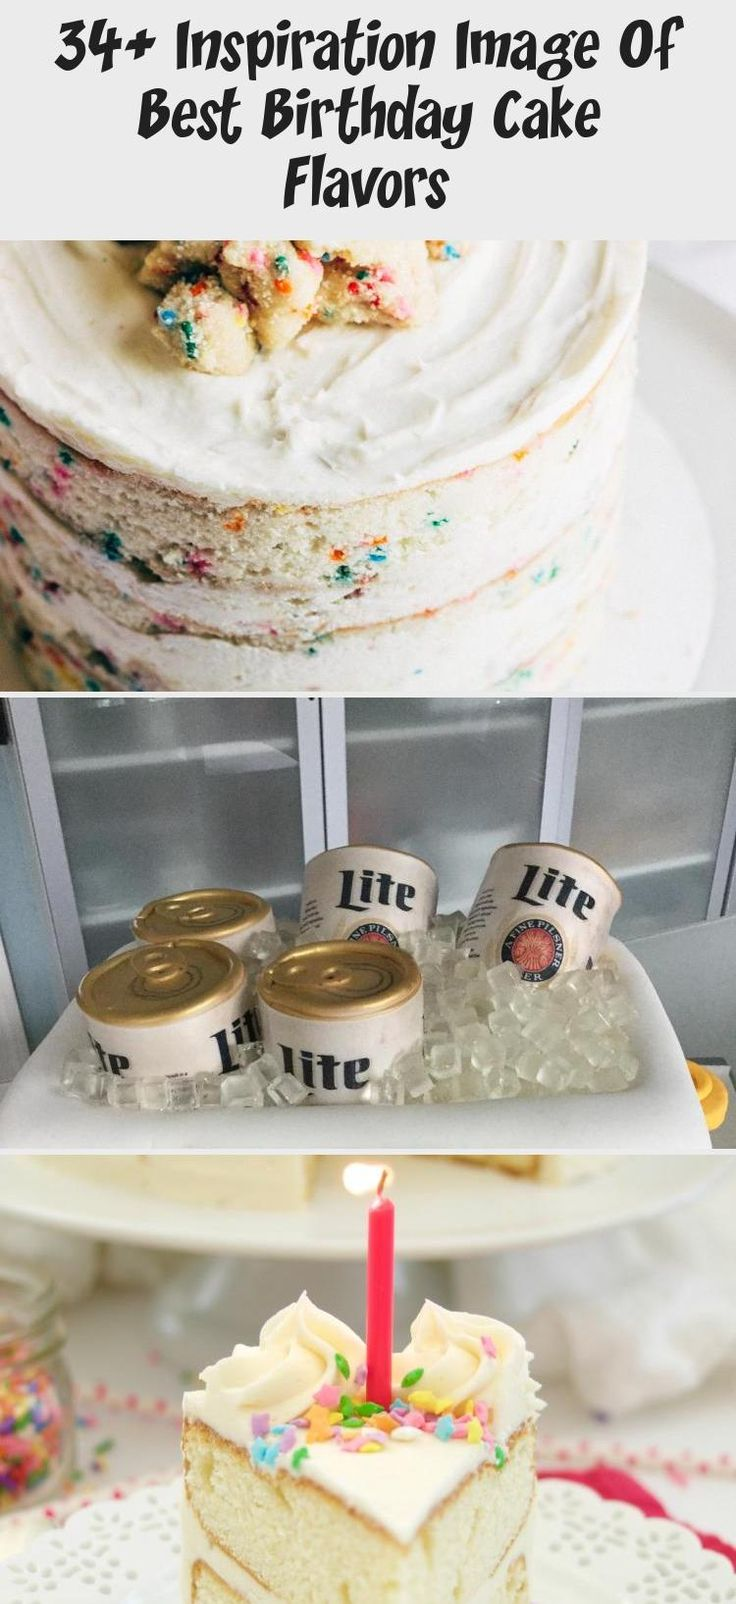 34+ Inspiration Image Of Best Birthday Cake Flavors, 2020